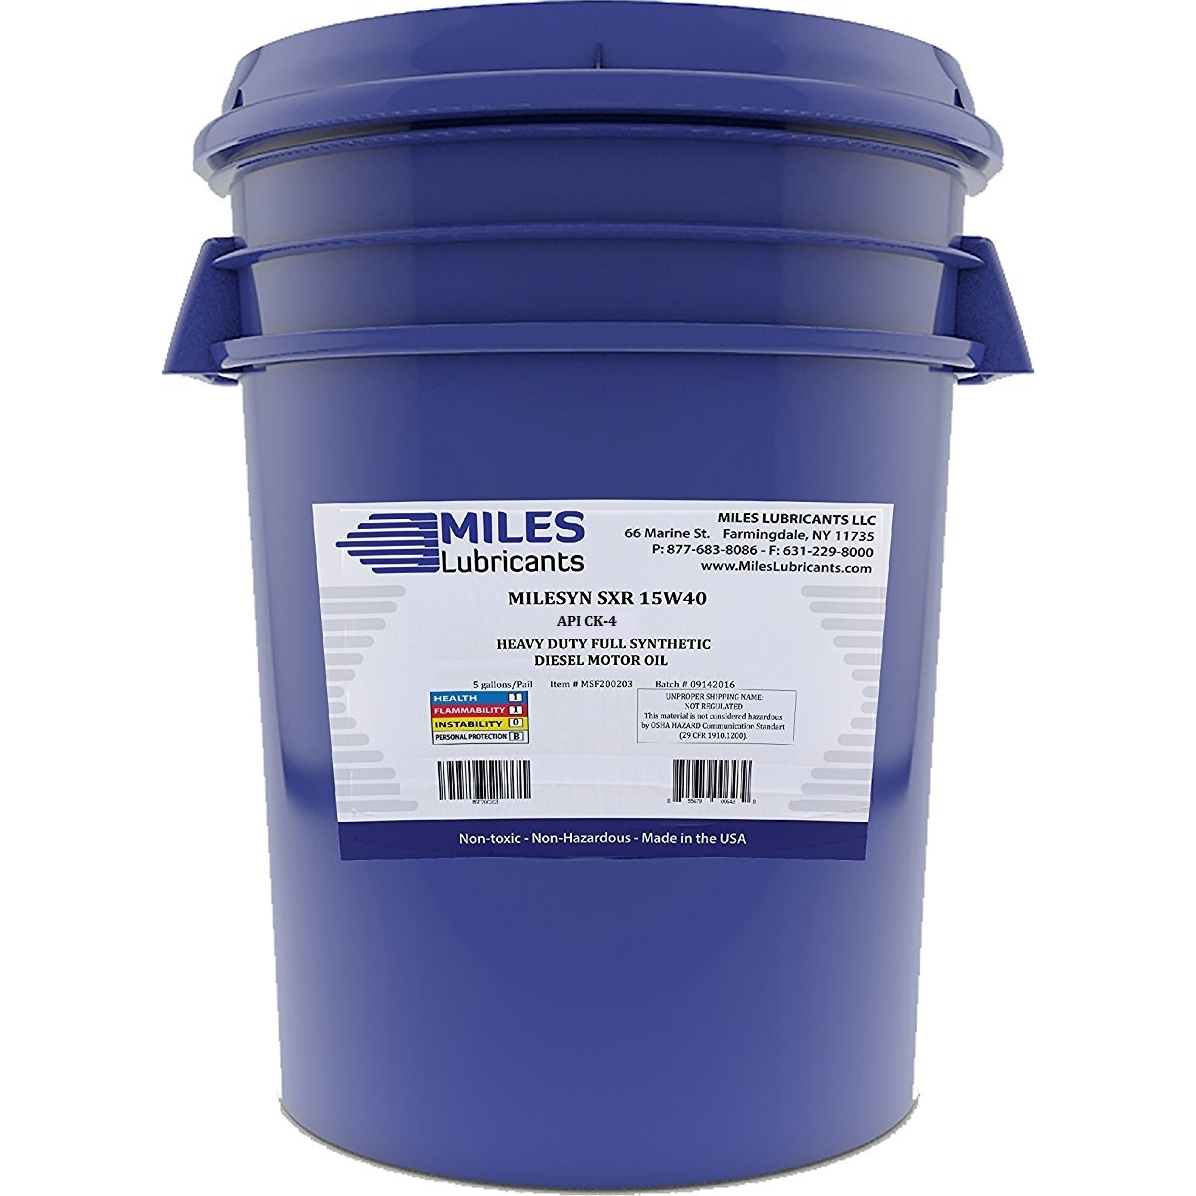 Milesyn SXR 15W40 API CJ-4, Full Synthetic Diesel Motor Oil, 5-Gallon Pail